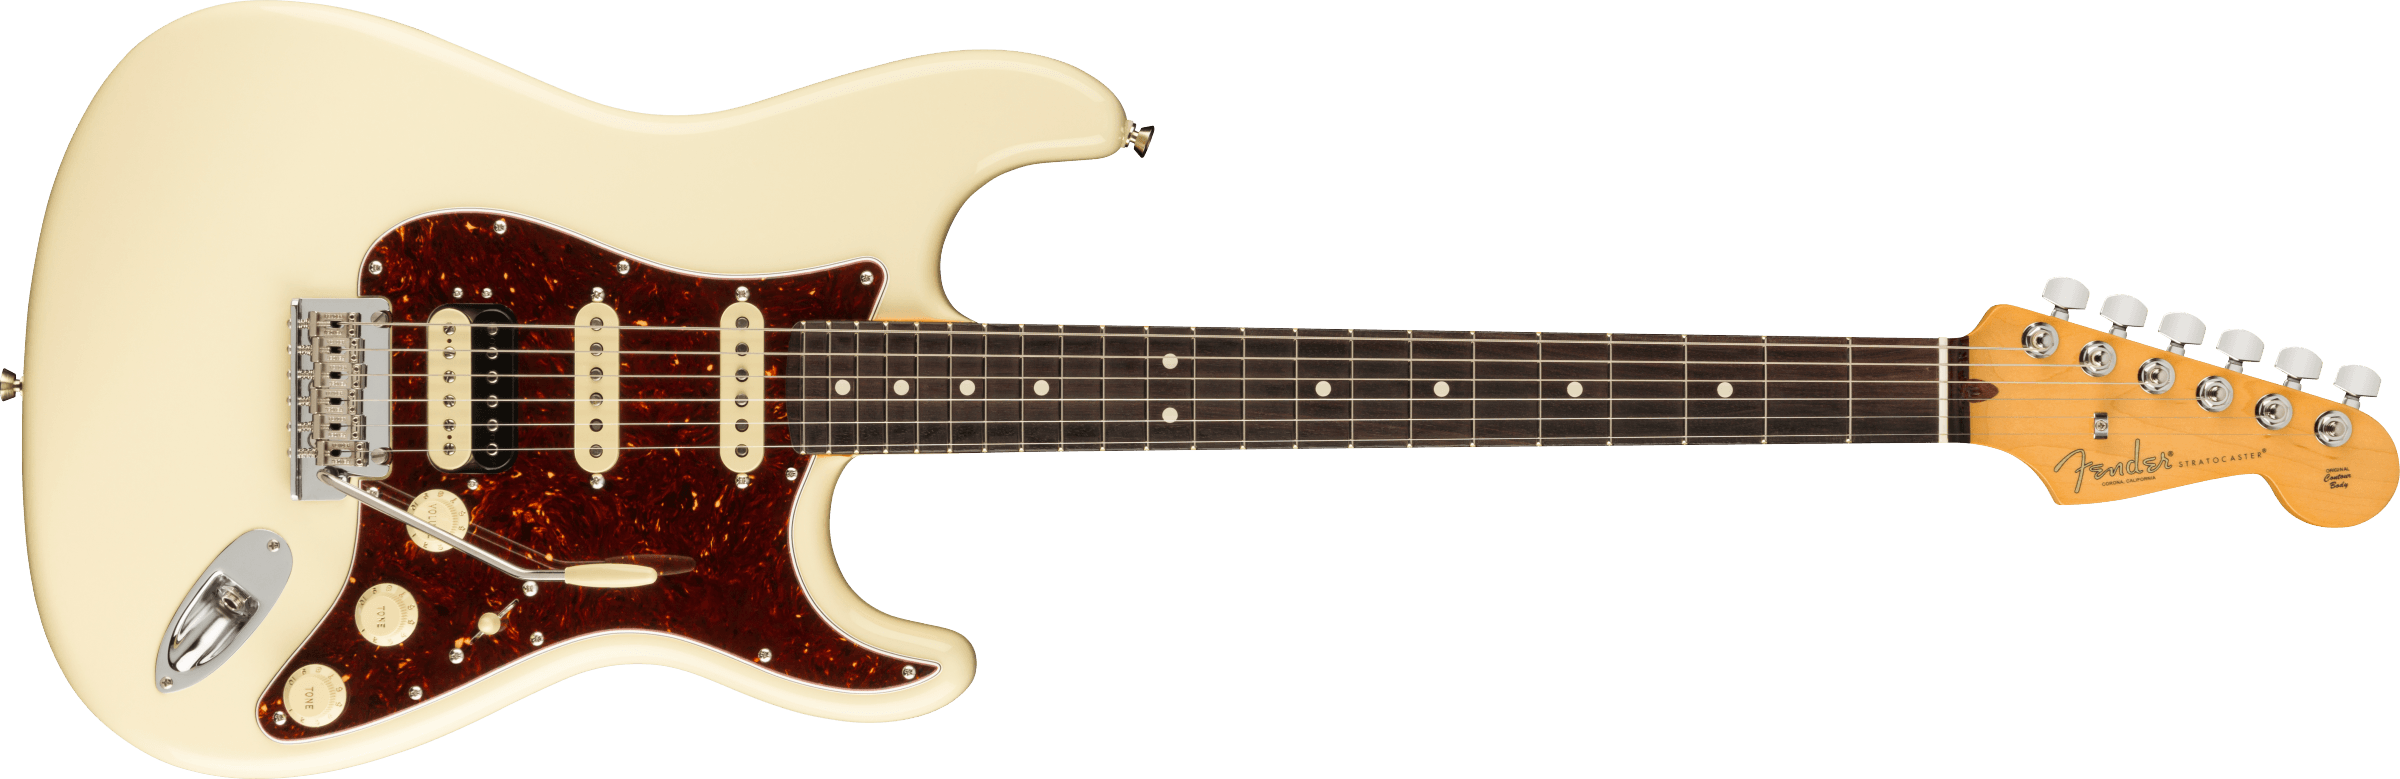 FENDER-American-Professional-II-Stratocaster-HSS-Rosewood-Fingerboard-Olympic-White-sku-571005540